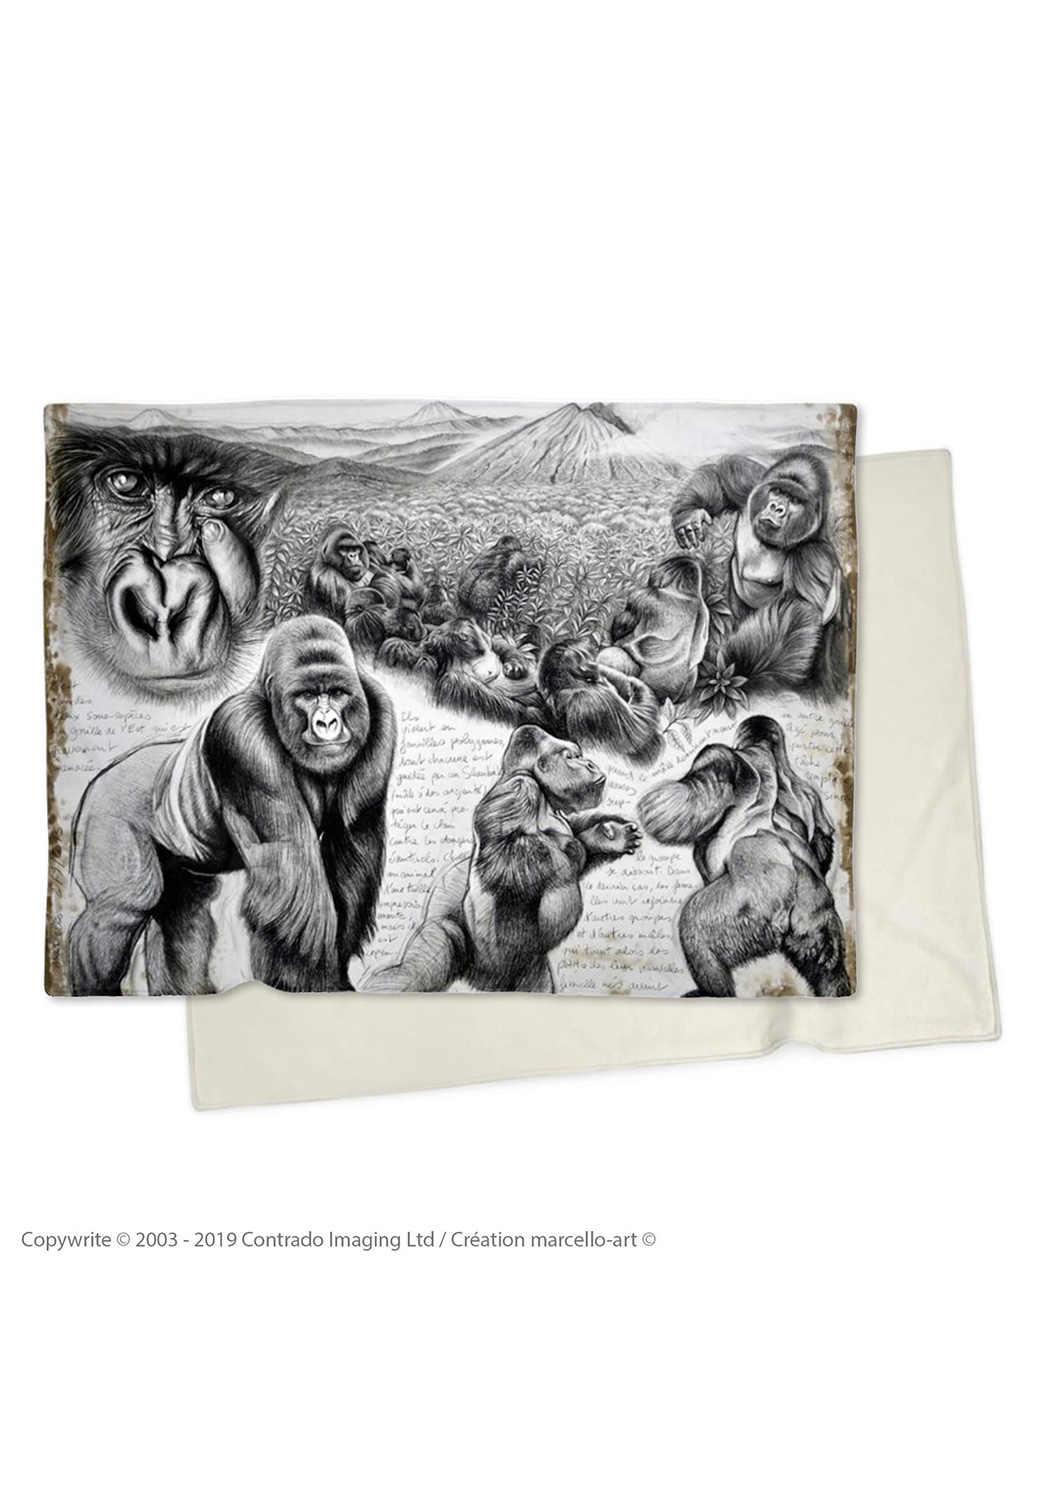 Marcello-art: Plaid Plaid 301 Virunga gorilla